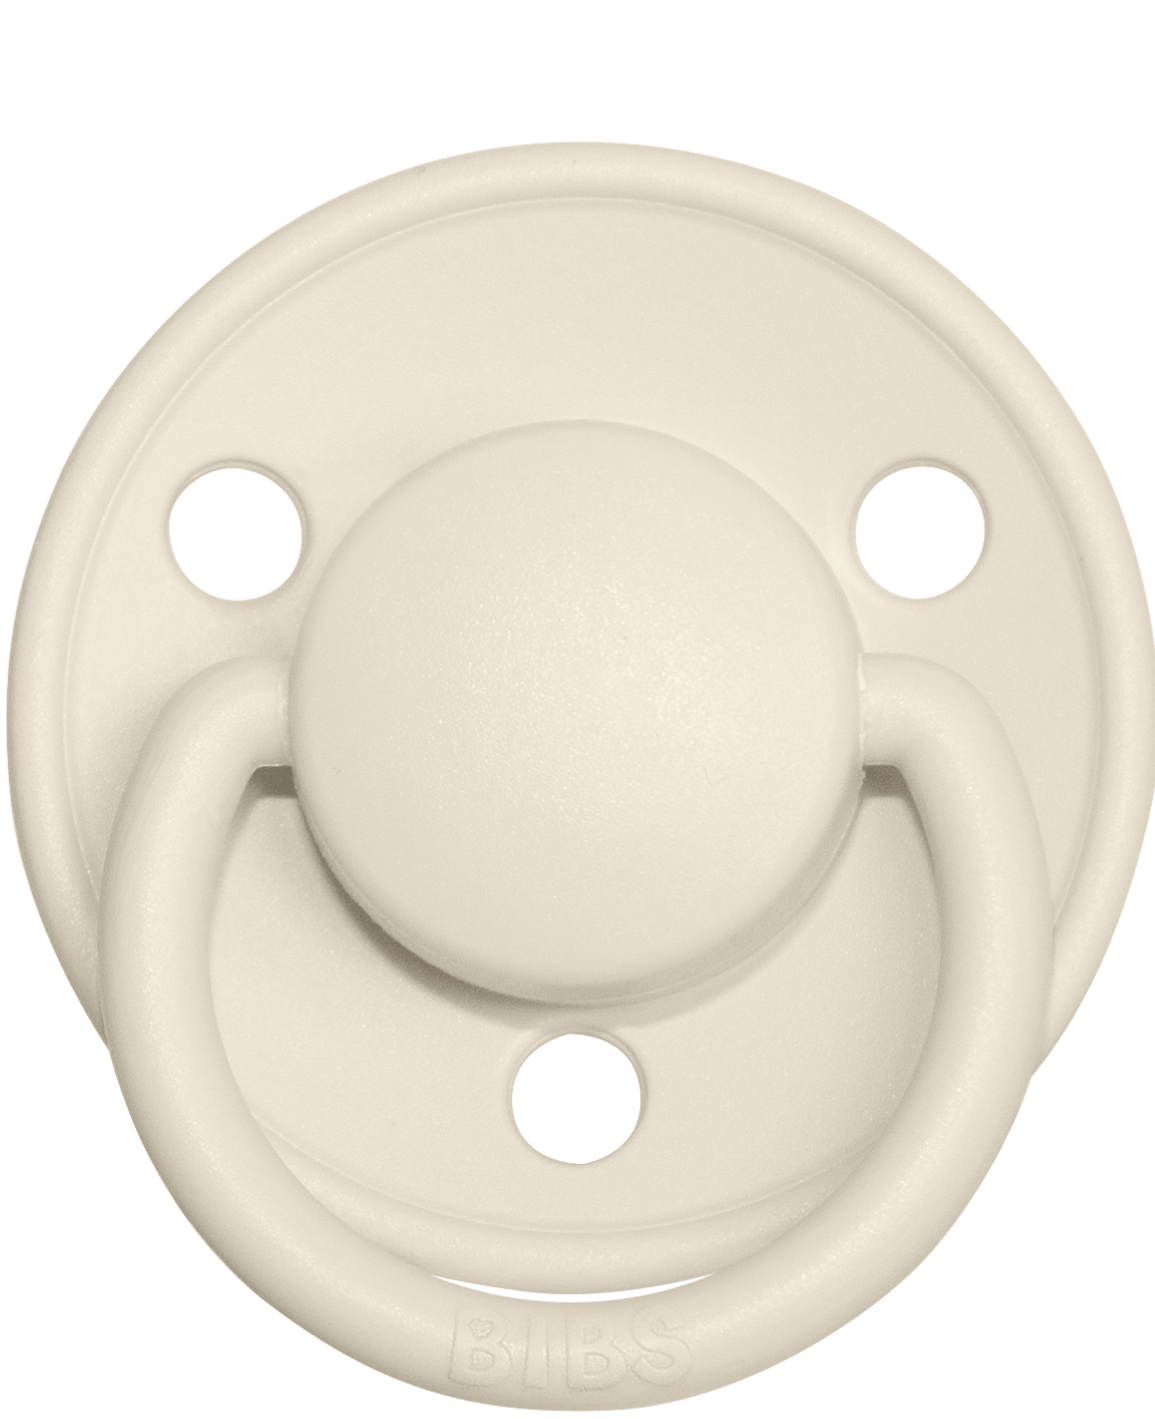 All-Ivory-18 - Silicone